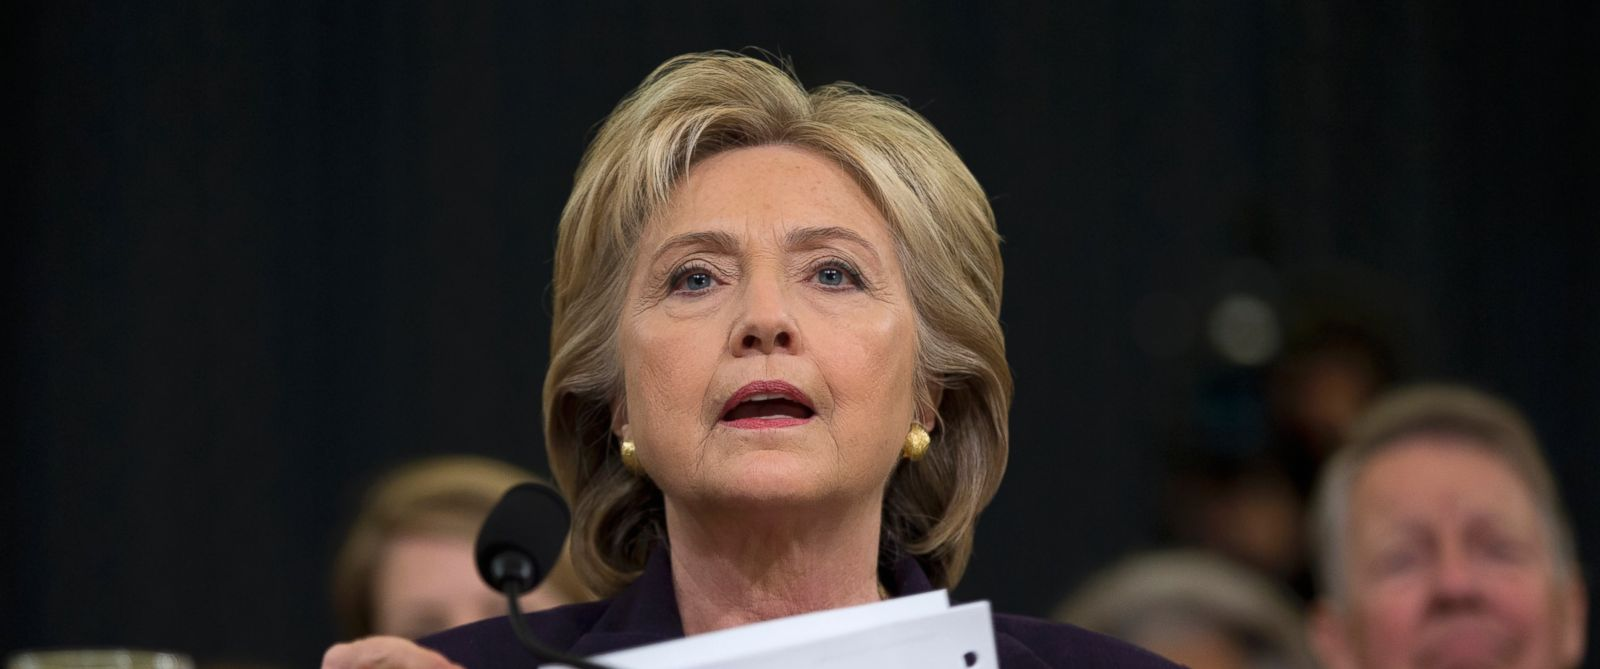 PHOTO: Democratic presidential candidate Hillary Clinton is seen on Capitol Hill in Washington, Oct. 22, 2015, prior to testifying before the House Benghazi Committee.